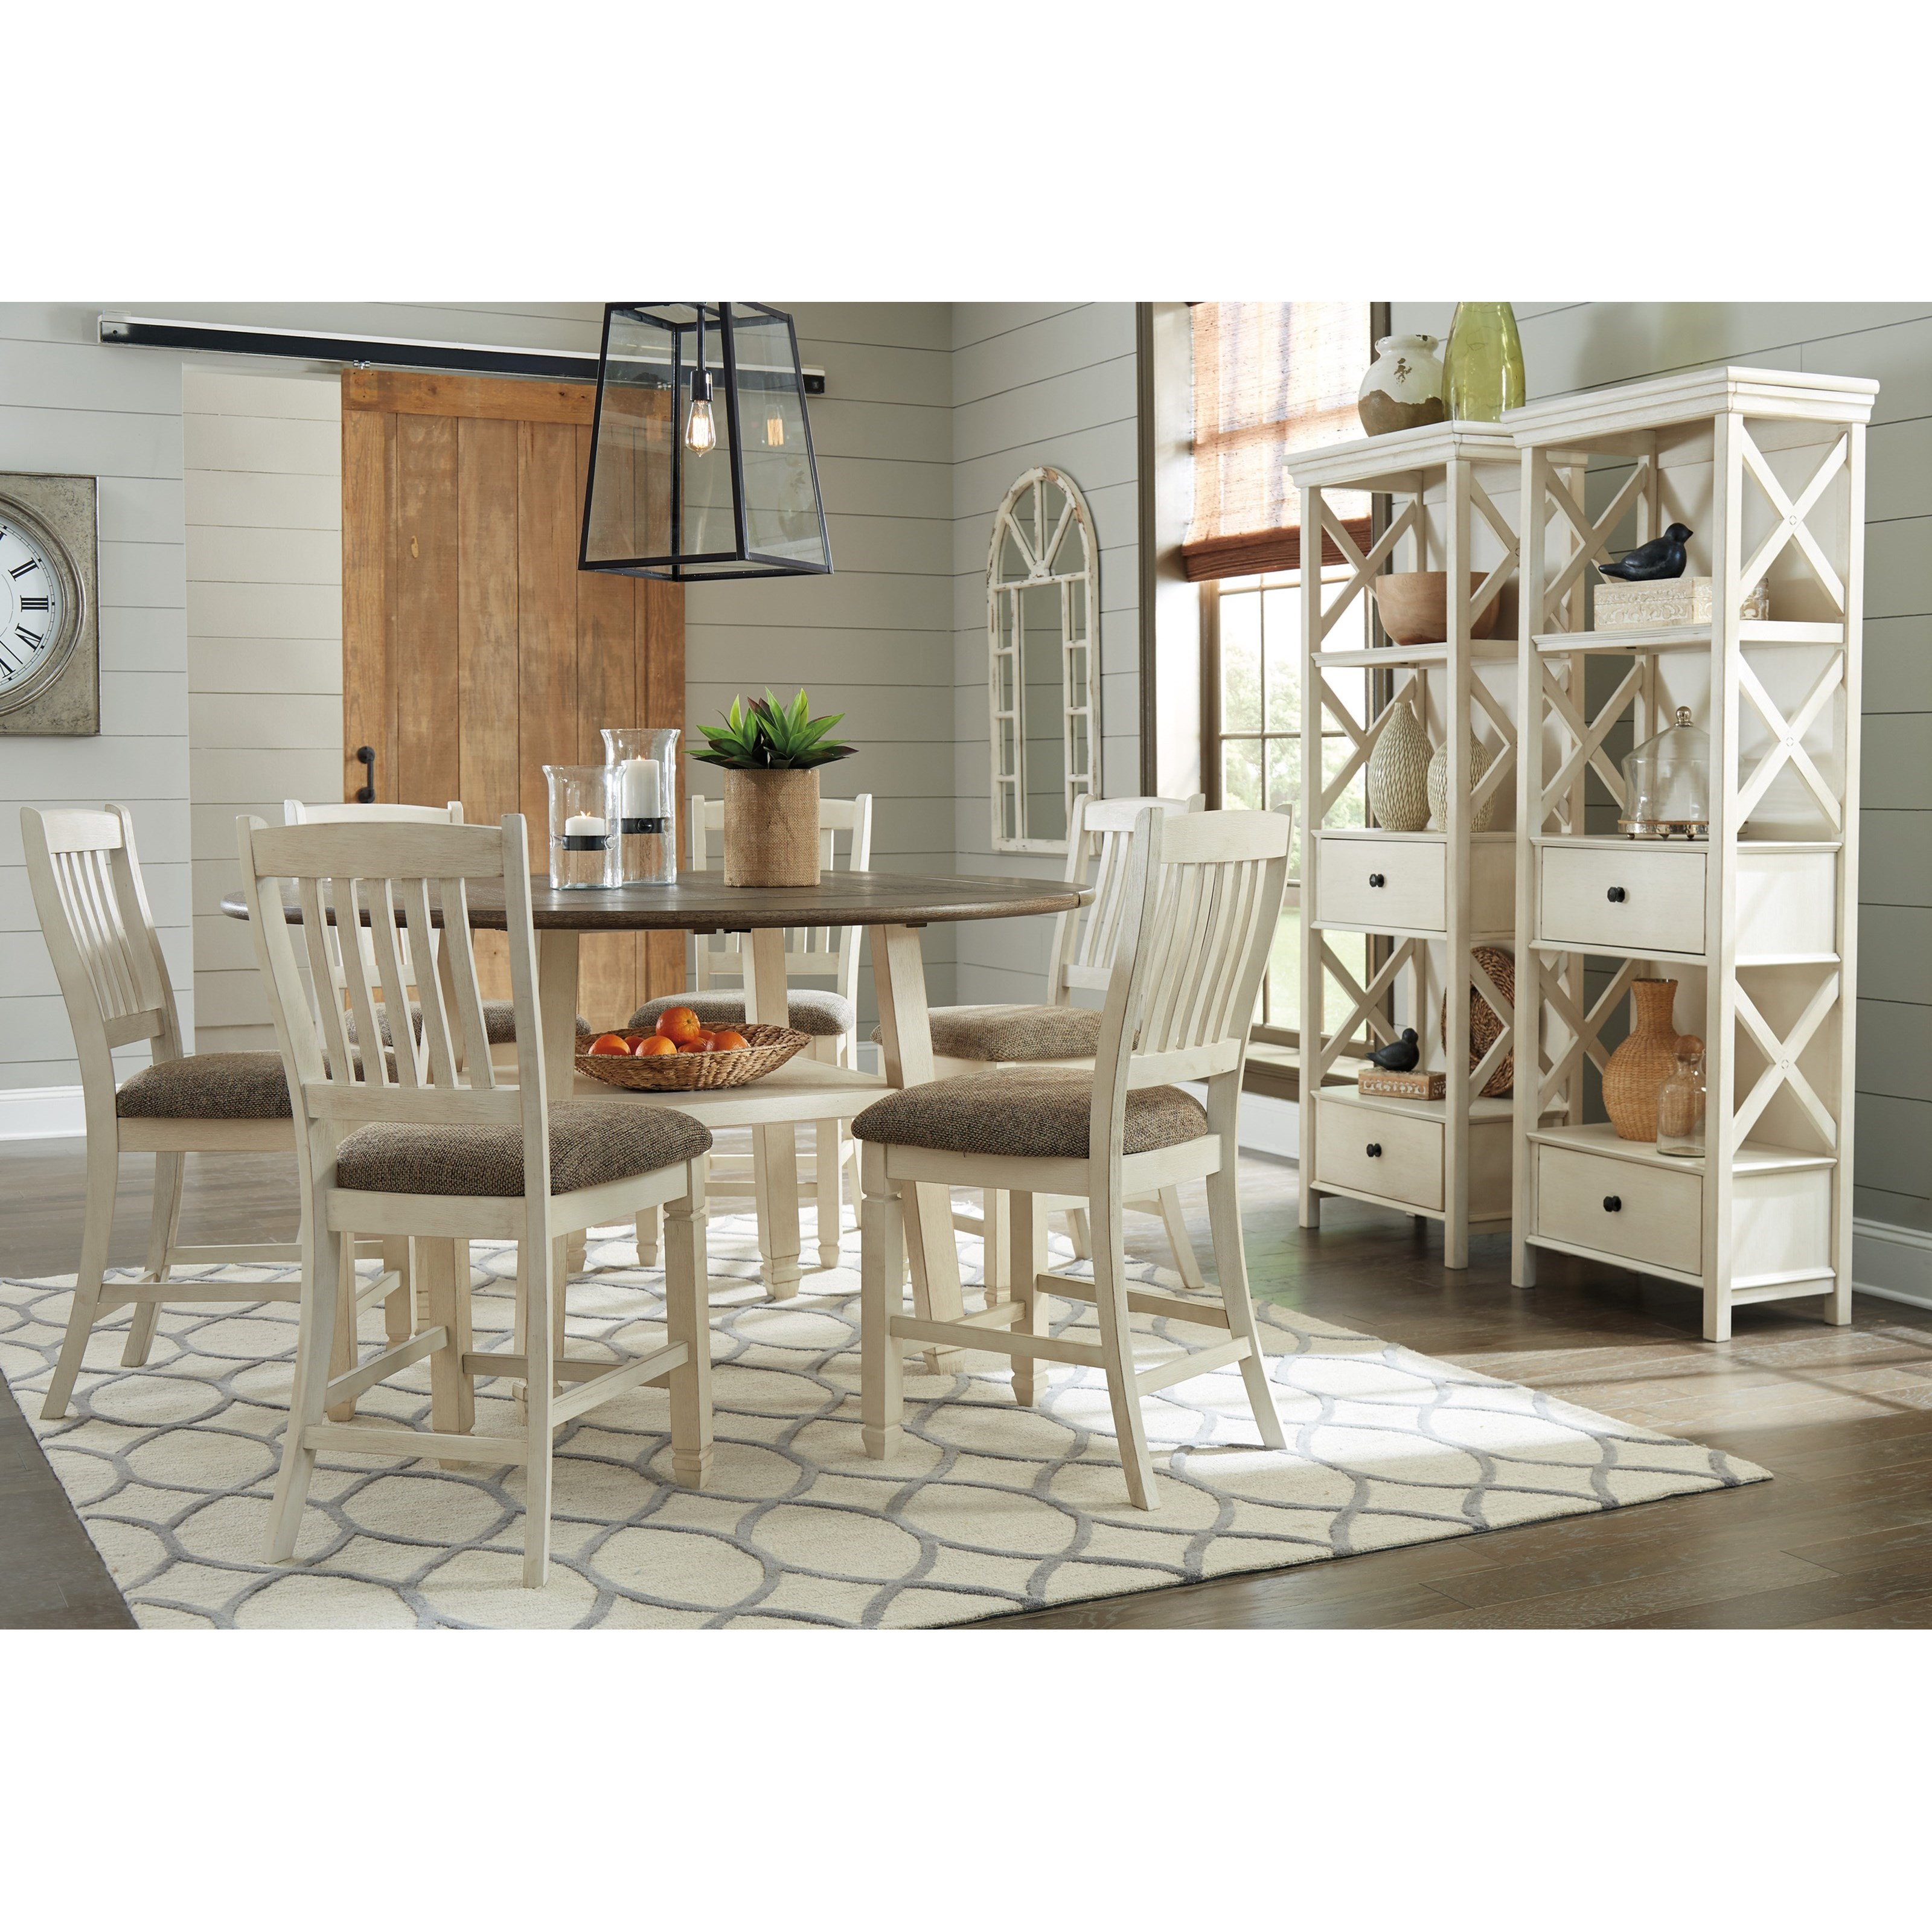 Bolanburg Formal Dining Room Group by Signature Design by Ashley at Zak's Warehouse Clearance Center